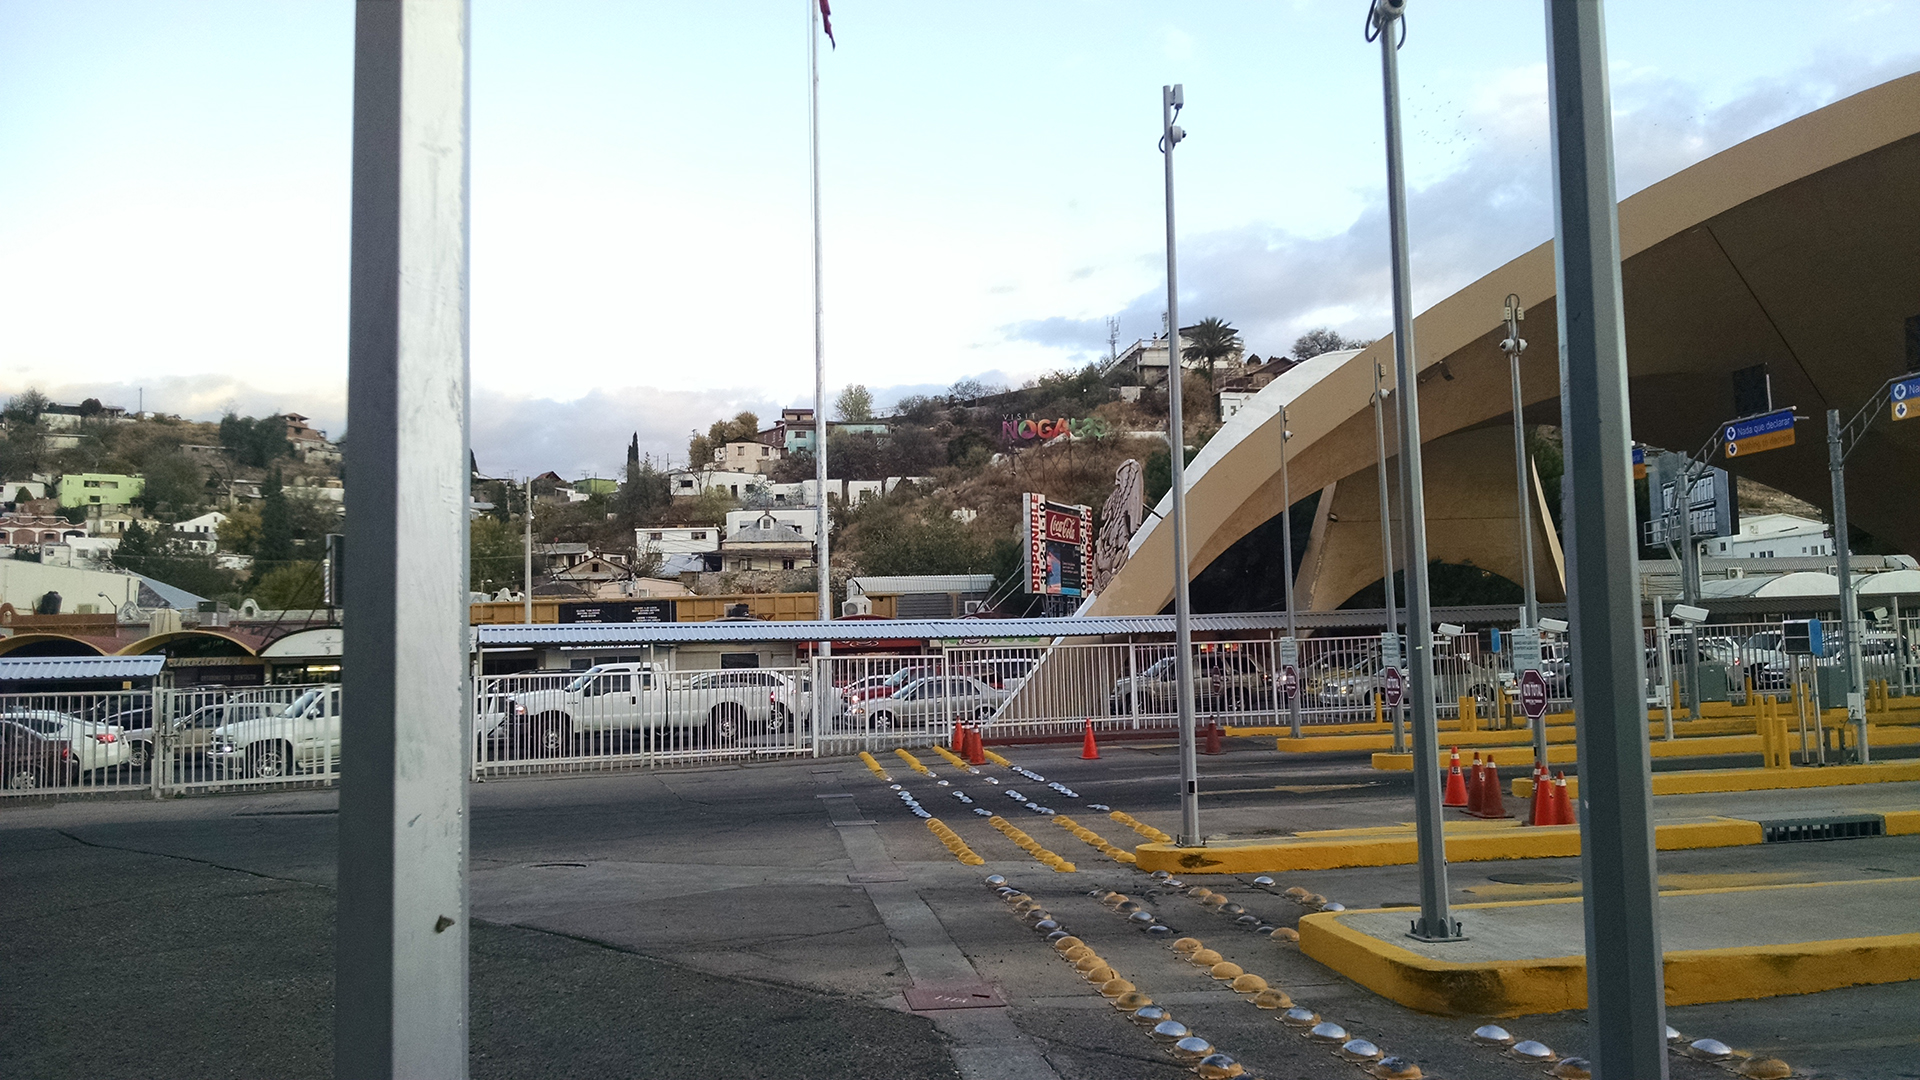 Cars line up to enter the U.S. at the international boundary with Mexico in Nogales.